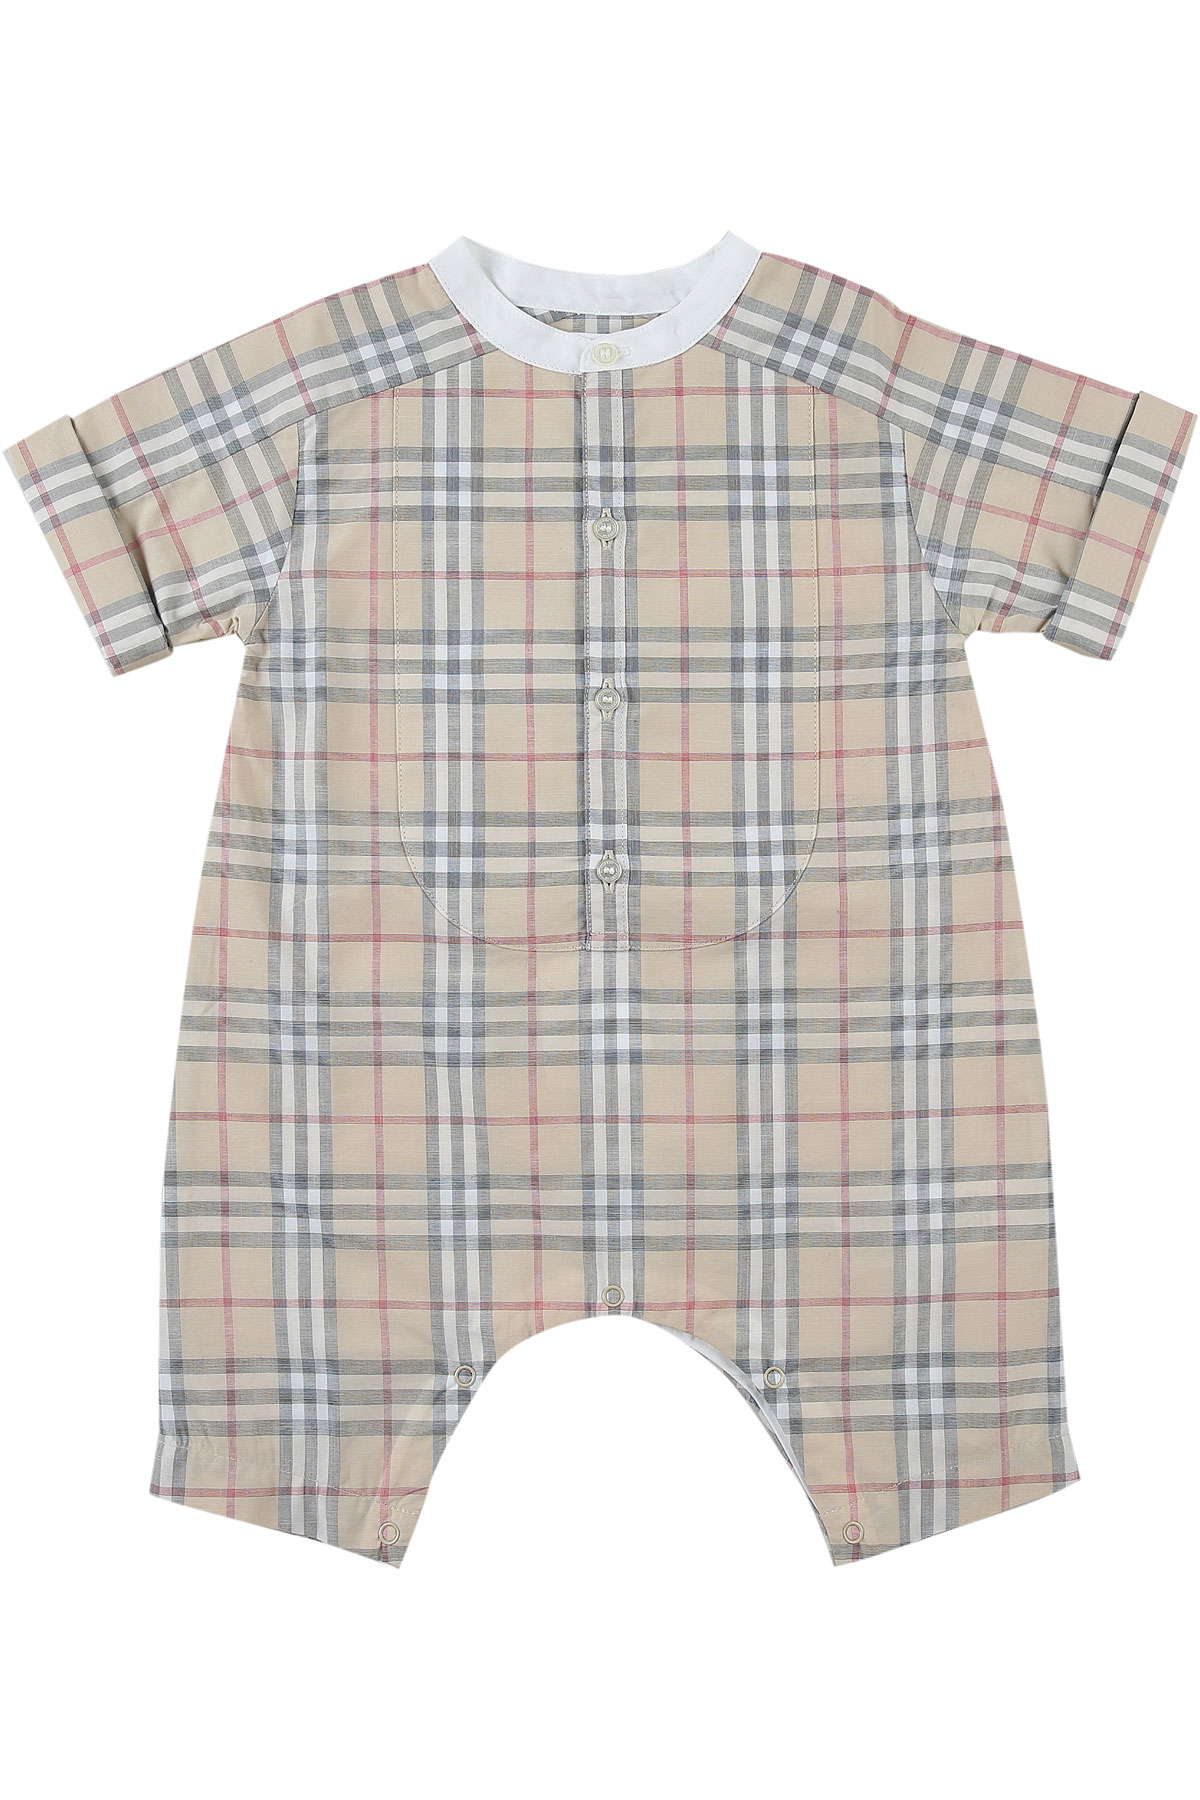 Burberry Baby Bodysuits & Onesies for Girls On Sale in Outlet, Pale Stone, Cotton, 2019, 3M 6M